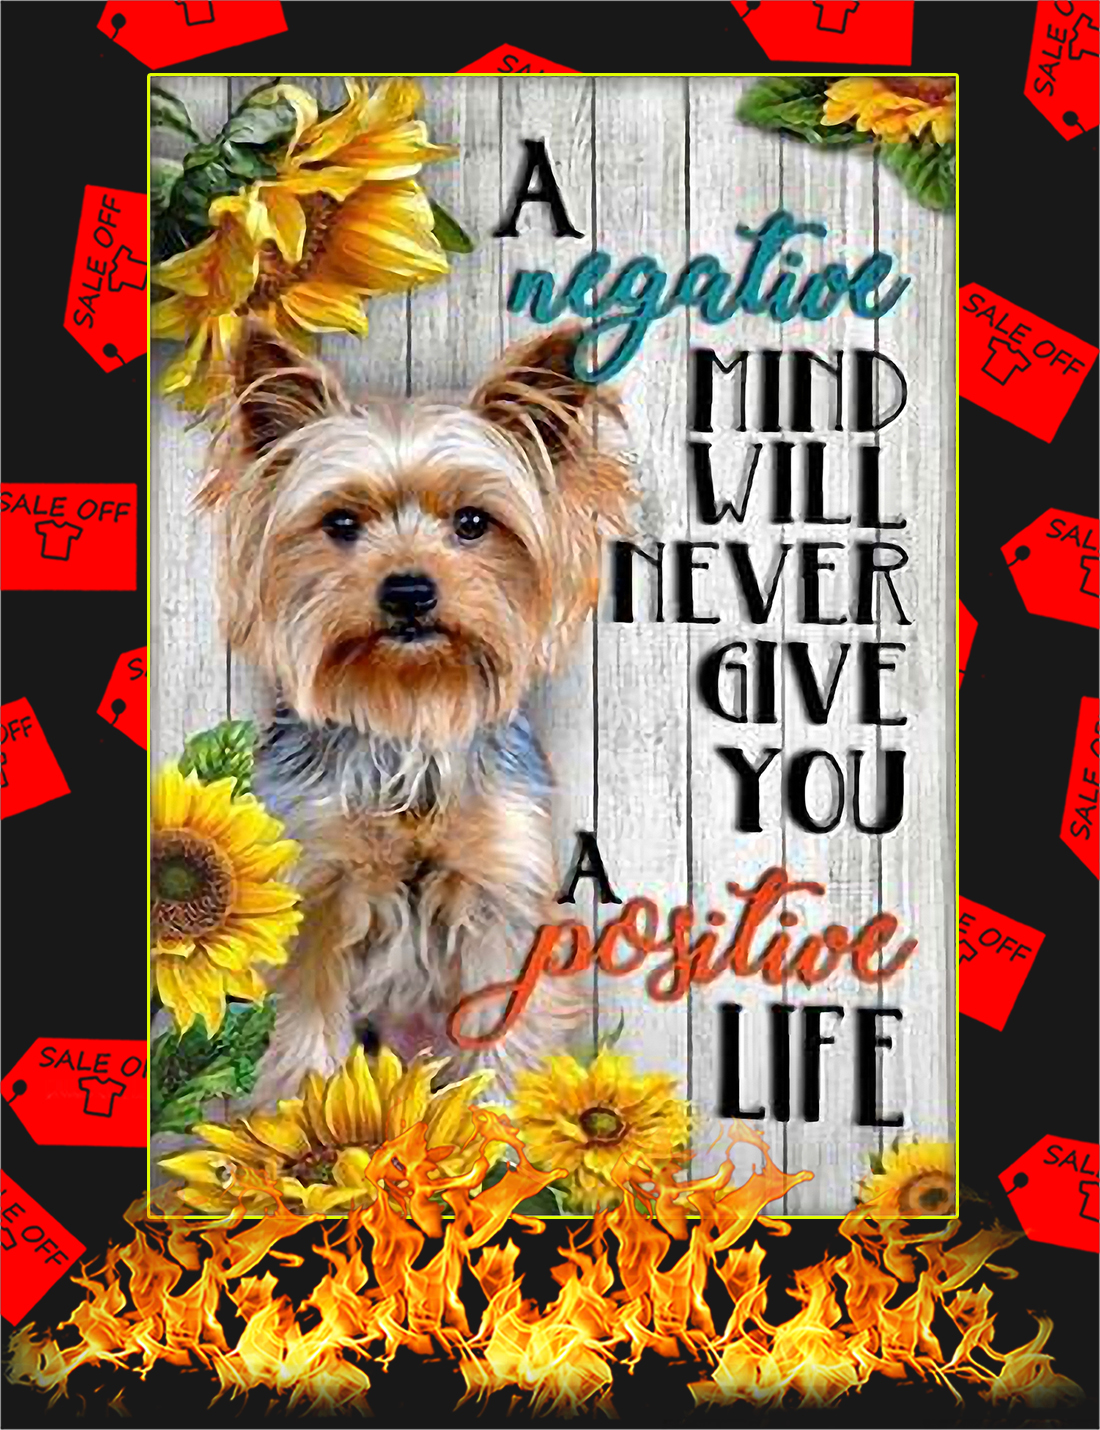 Yorkshire A negative mind will never give you a positive life poster - A4